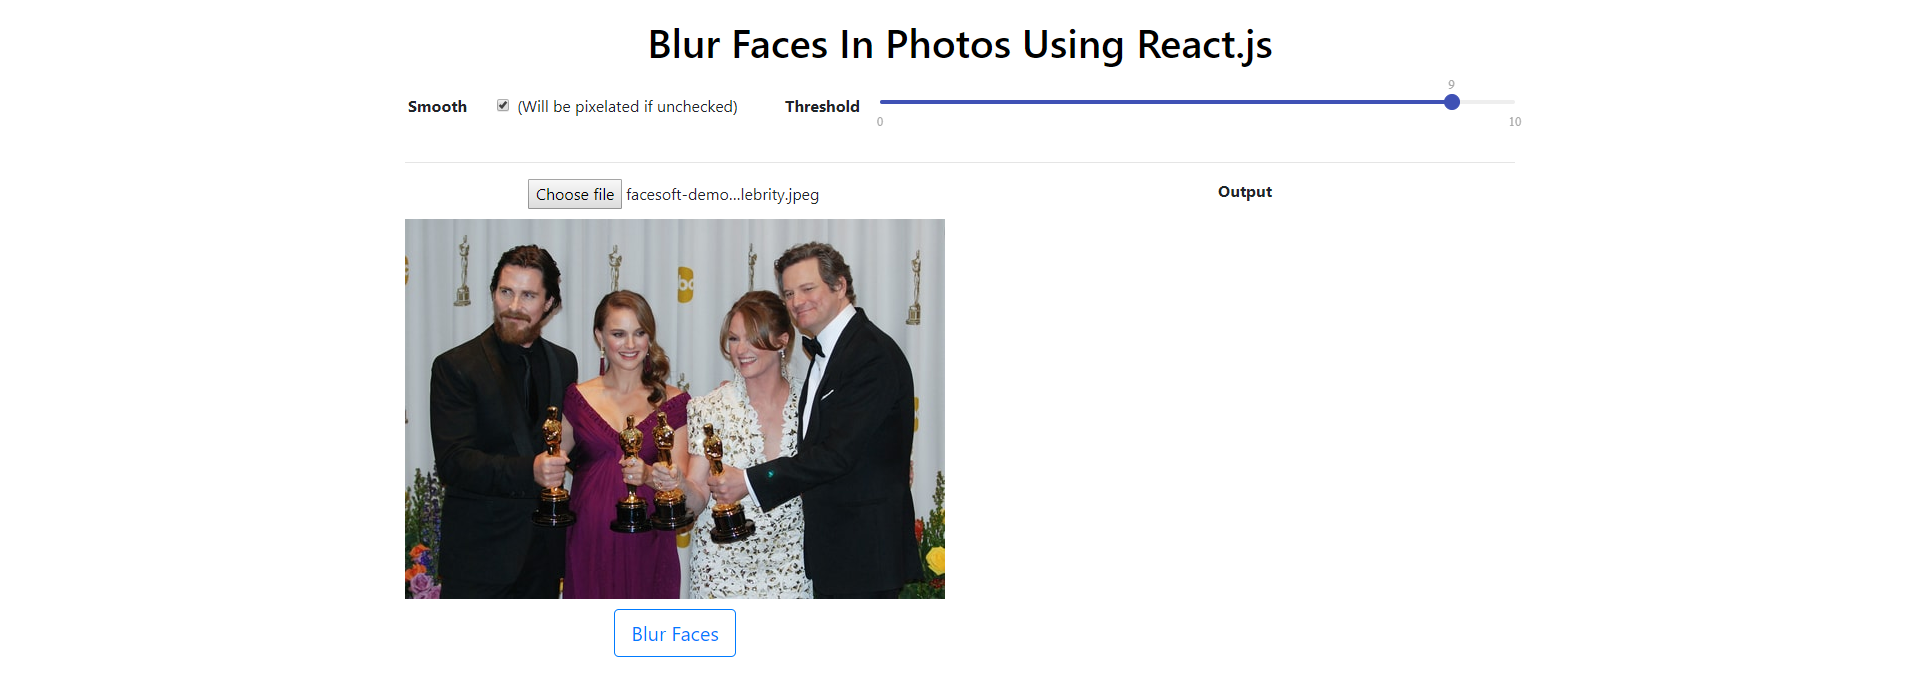 How to Blur Faces in Photos Using React - Better Programming